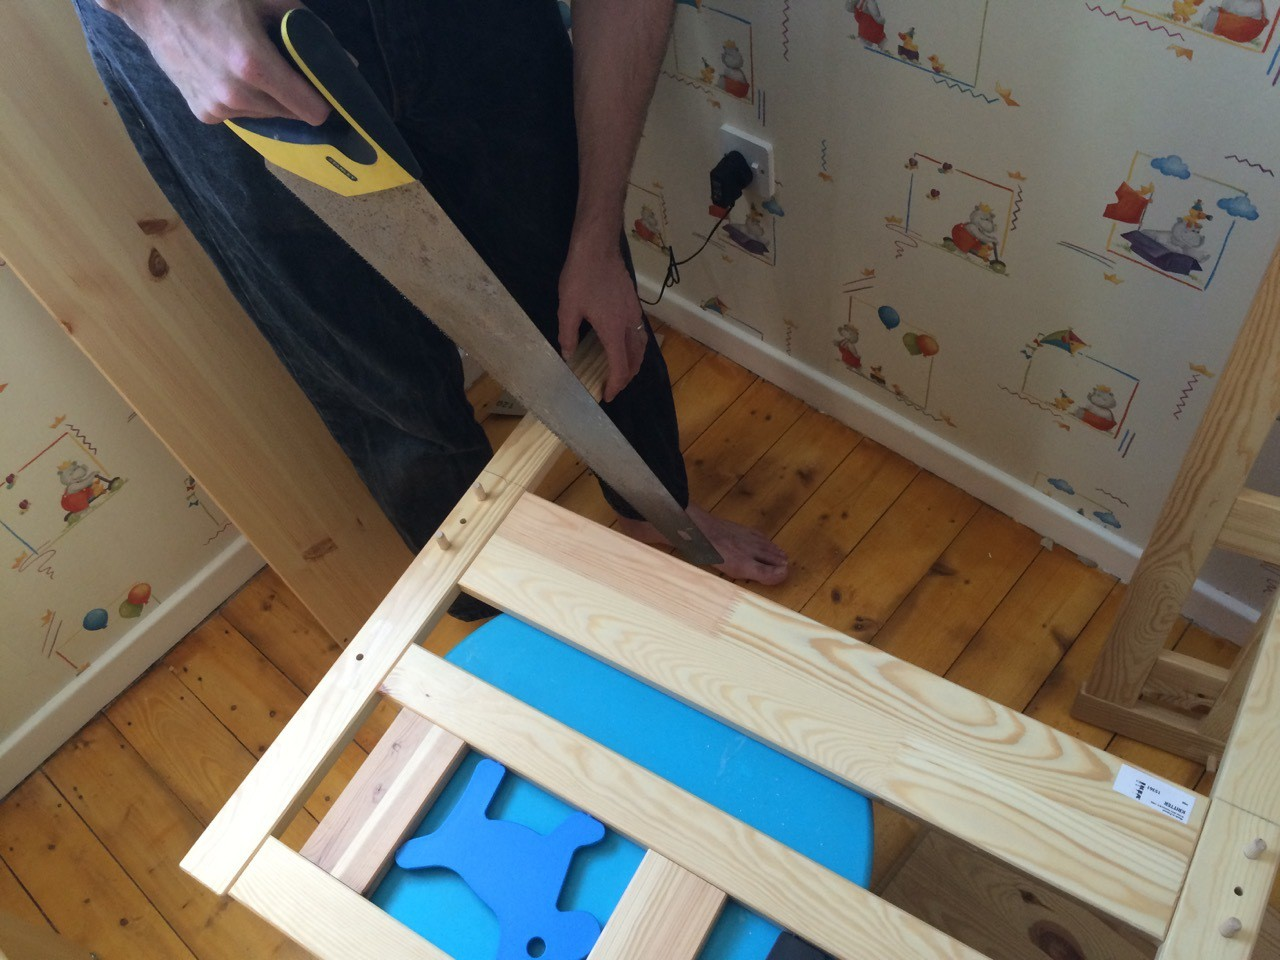 Ikea toddler bed kritter - Cutting Kritter Bed Down To Size Kura Bunkbed Hack